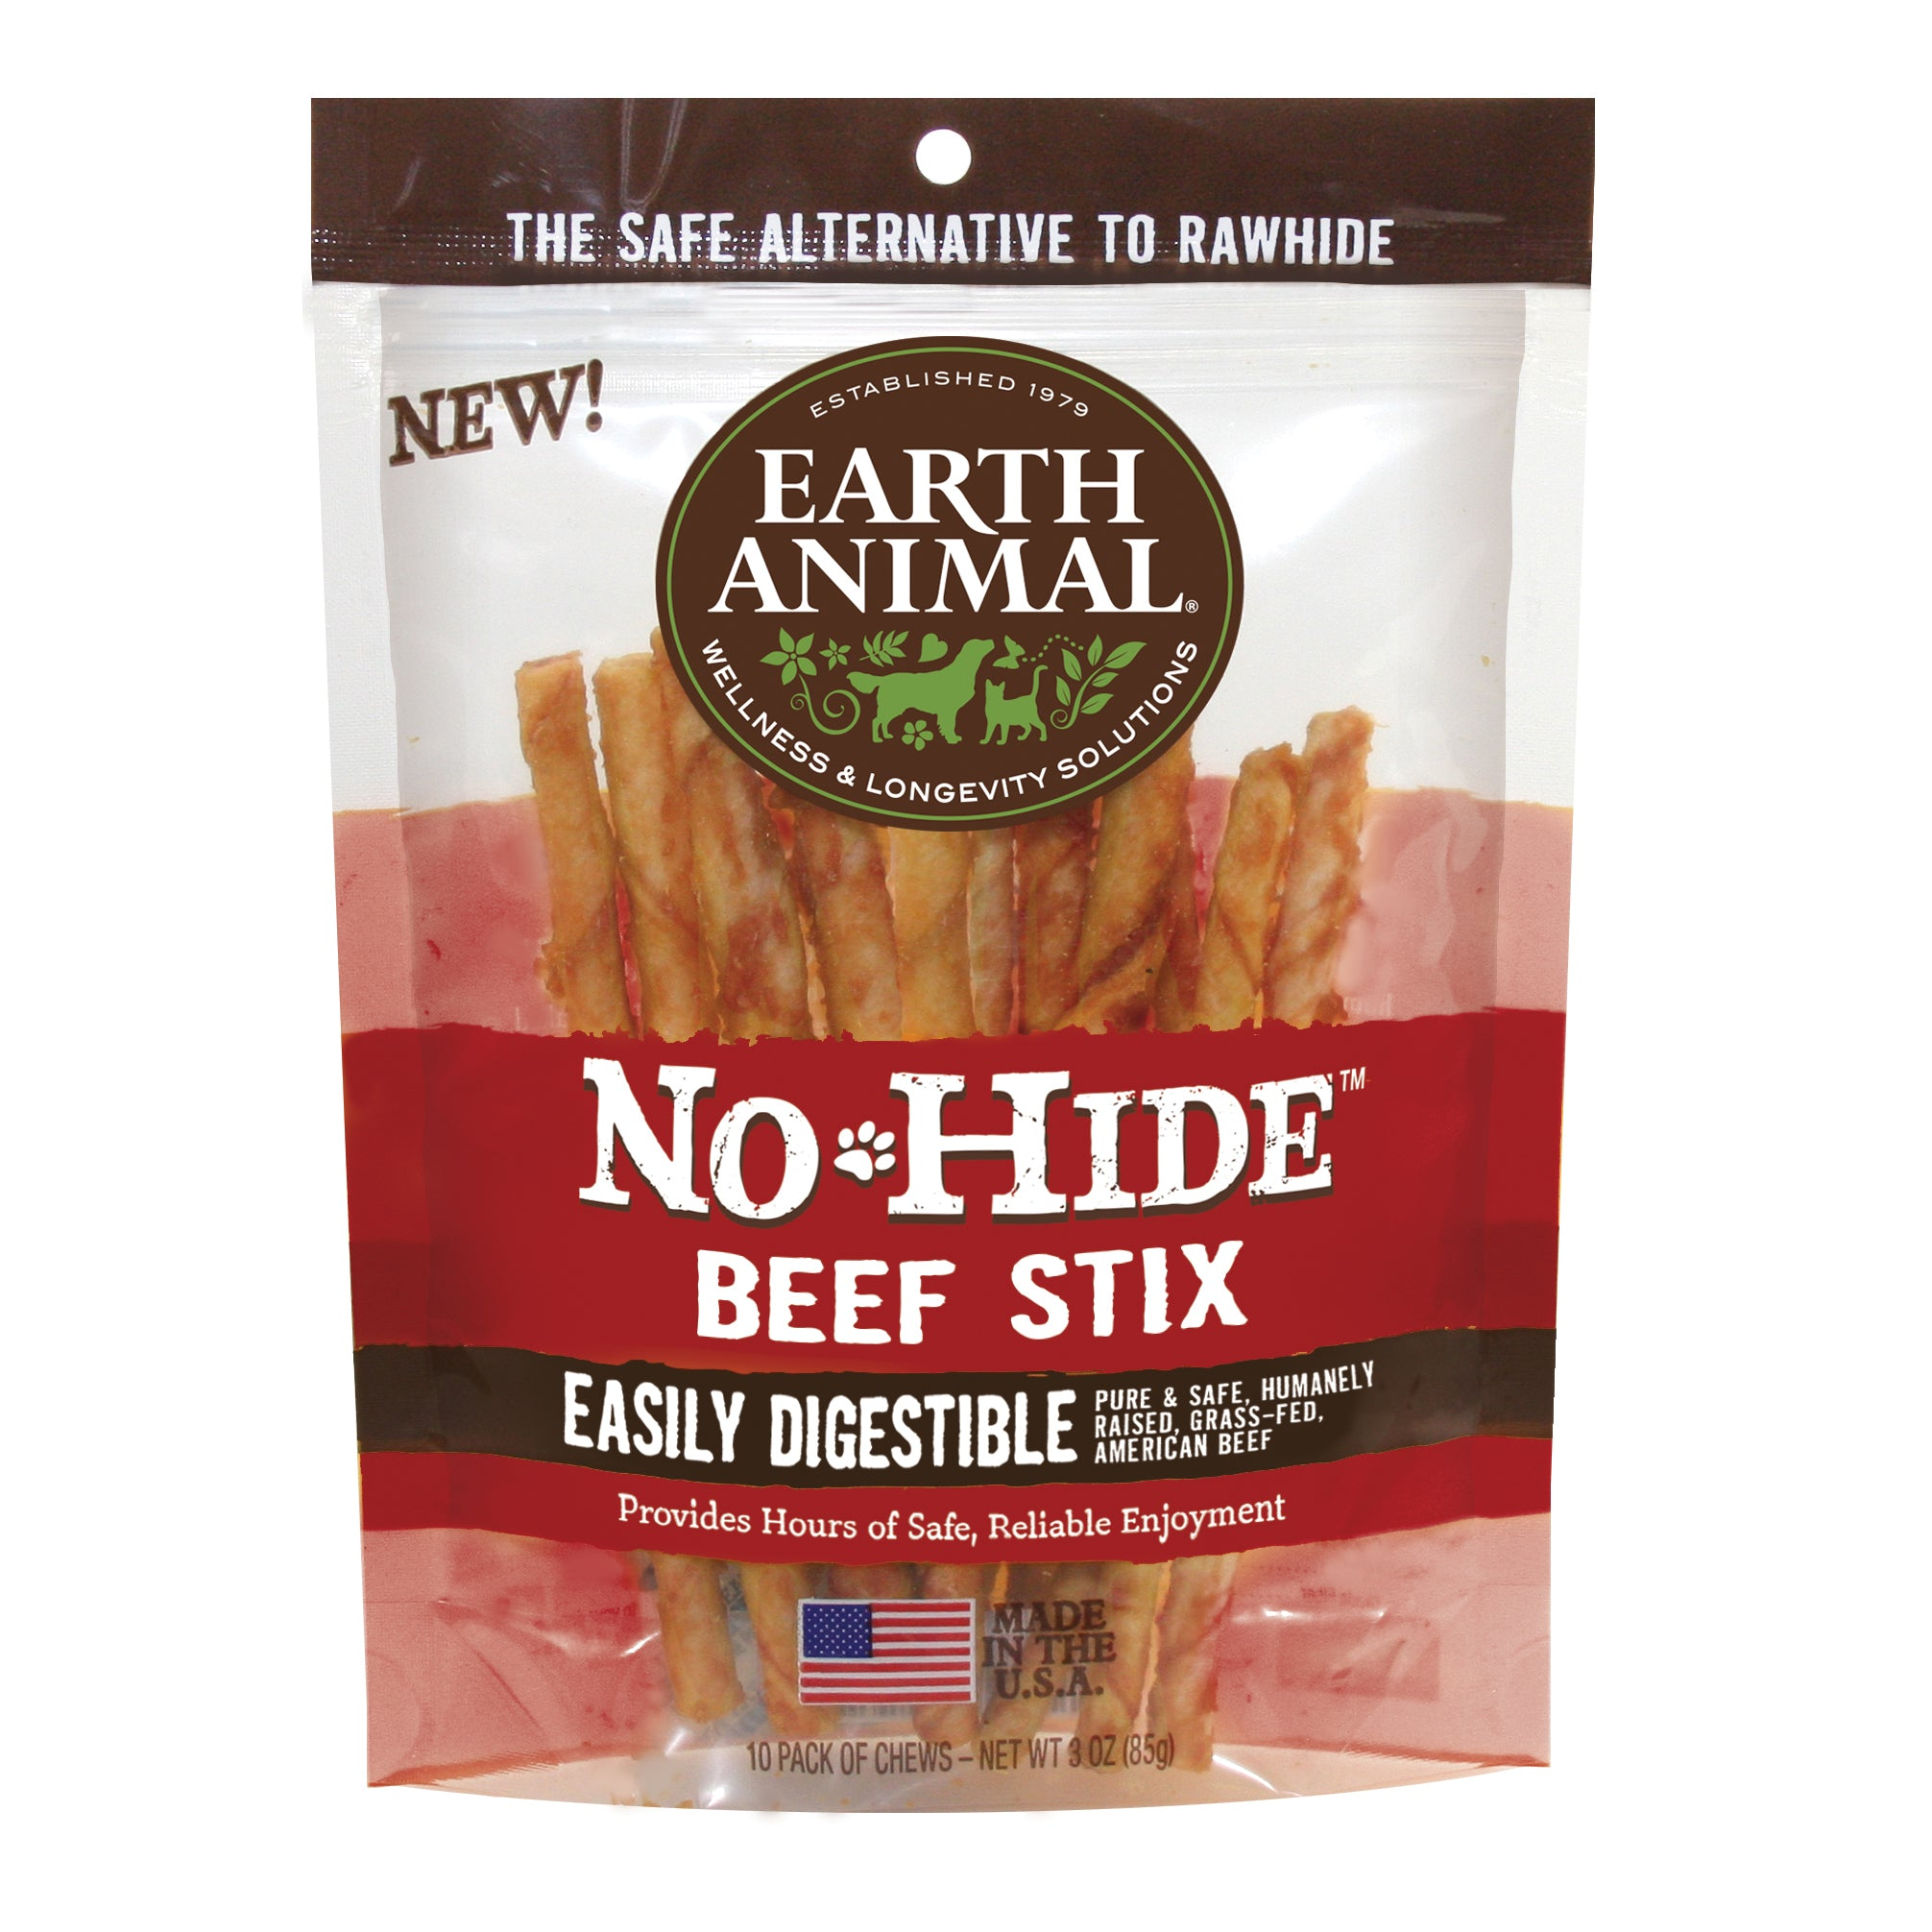 Earth Animal No-Hide Beef Stix 10 pack